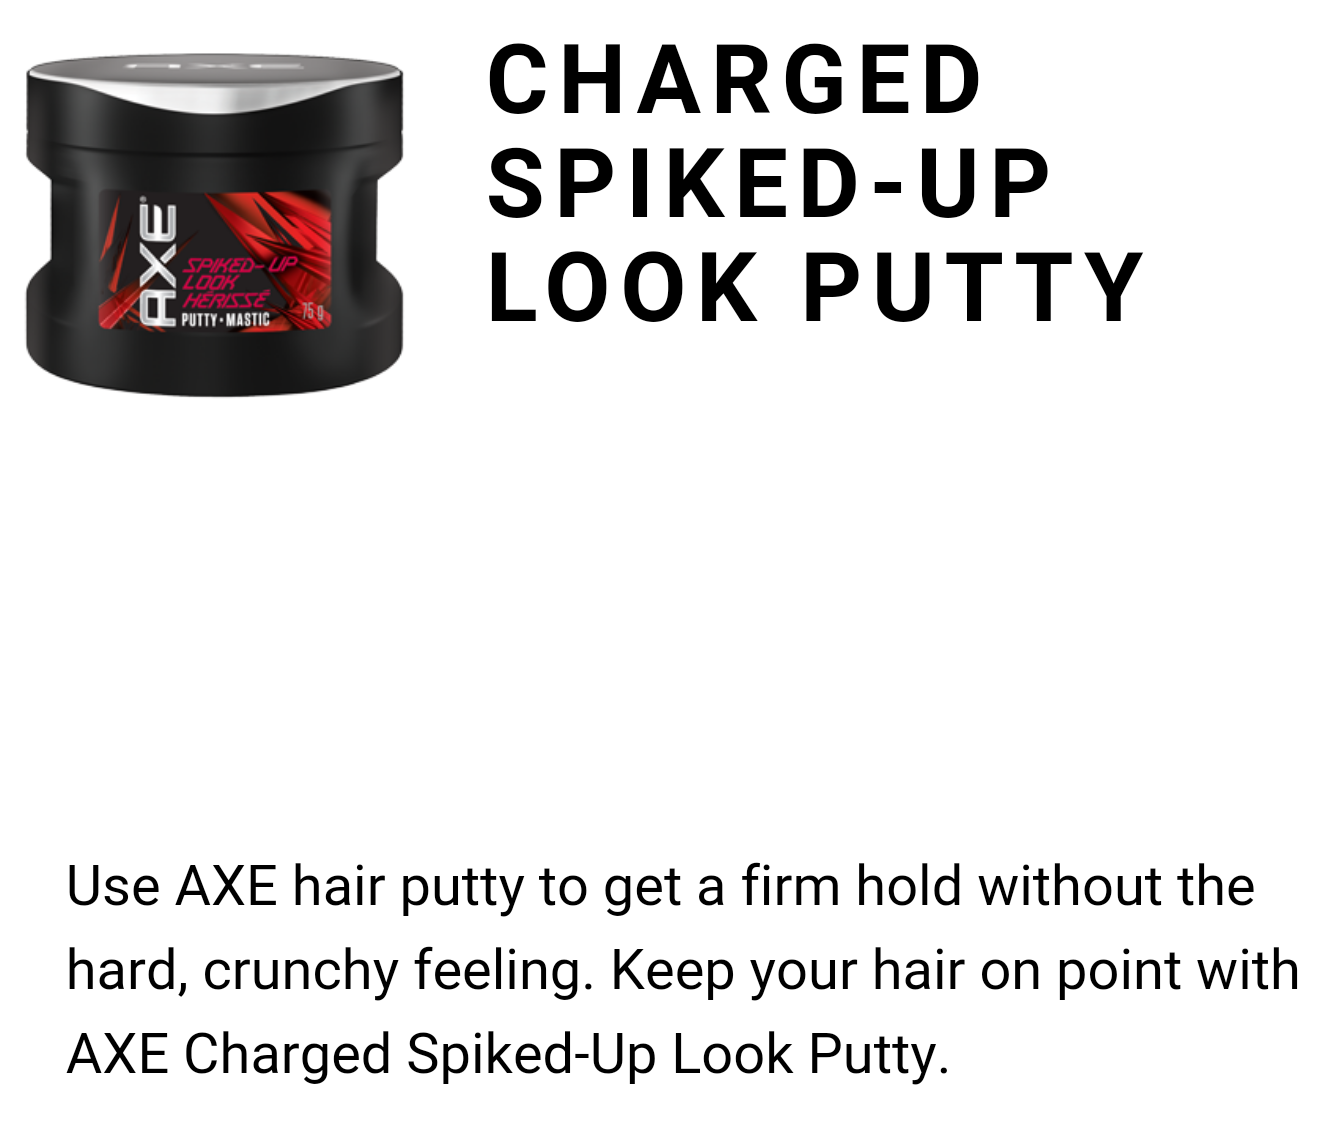 #AXEGOTSTYLE Charged Spiked-Up Look Putty